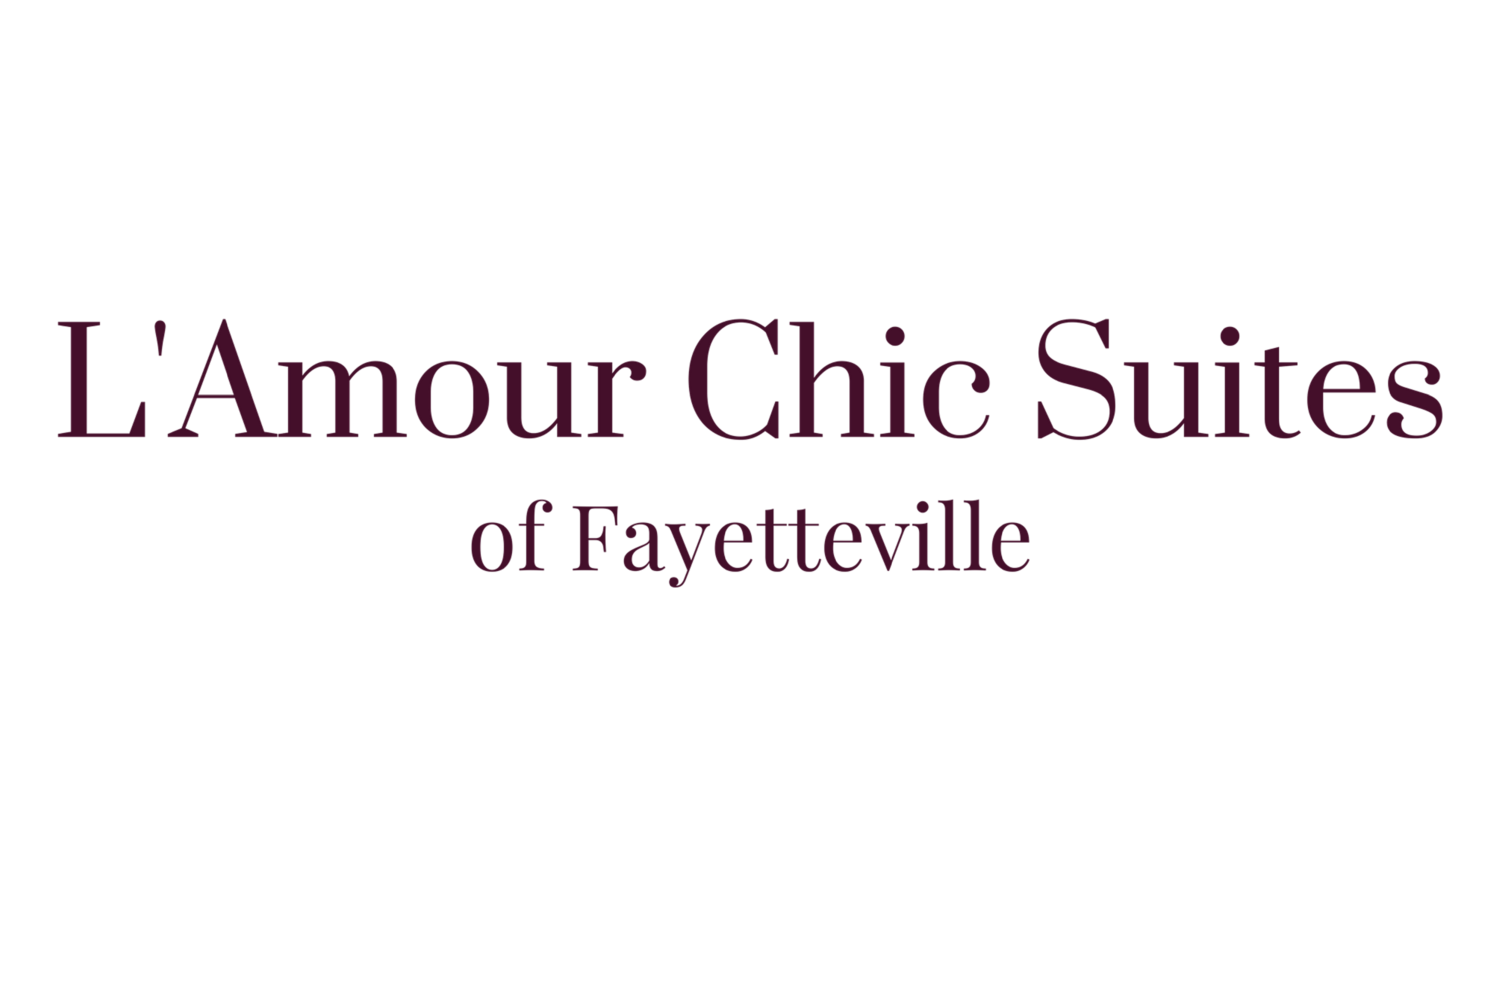 L'Amour Chic Suites of Fayetteville